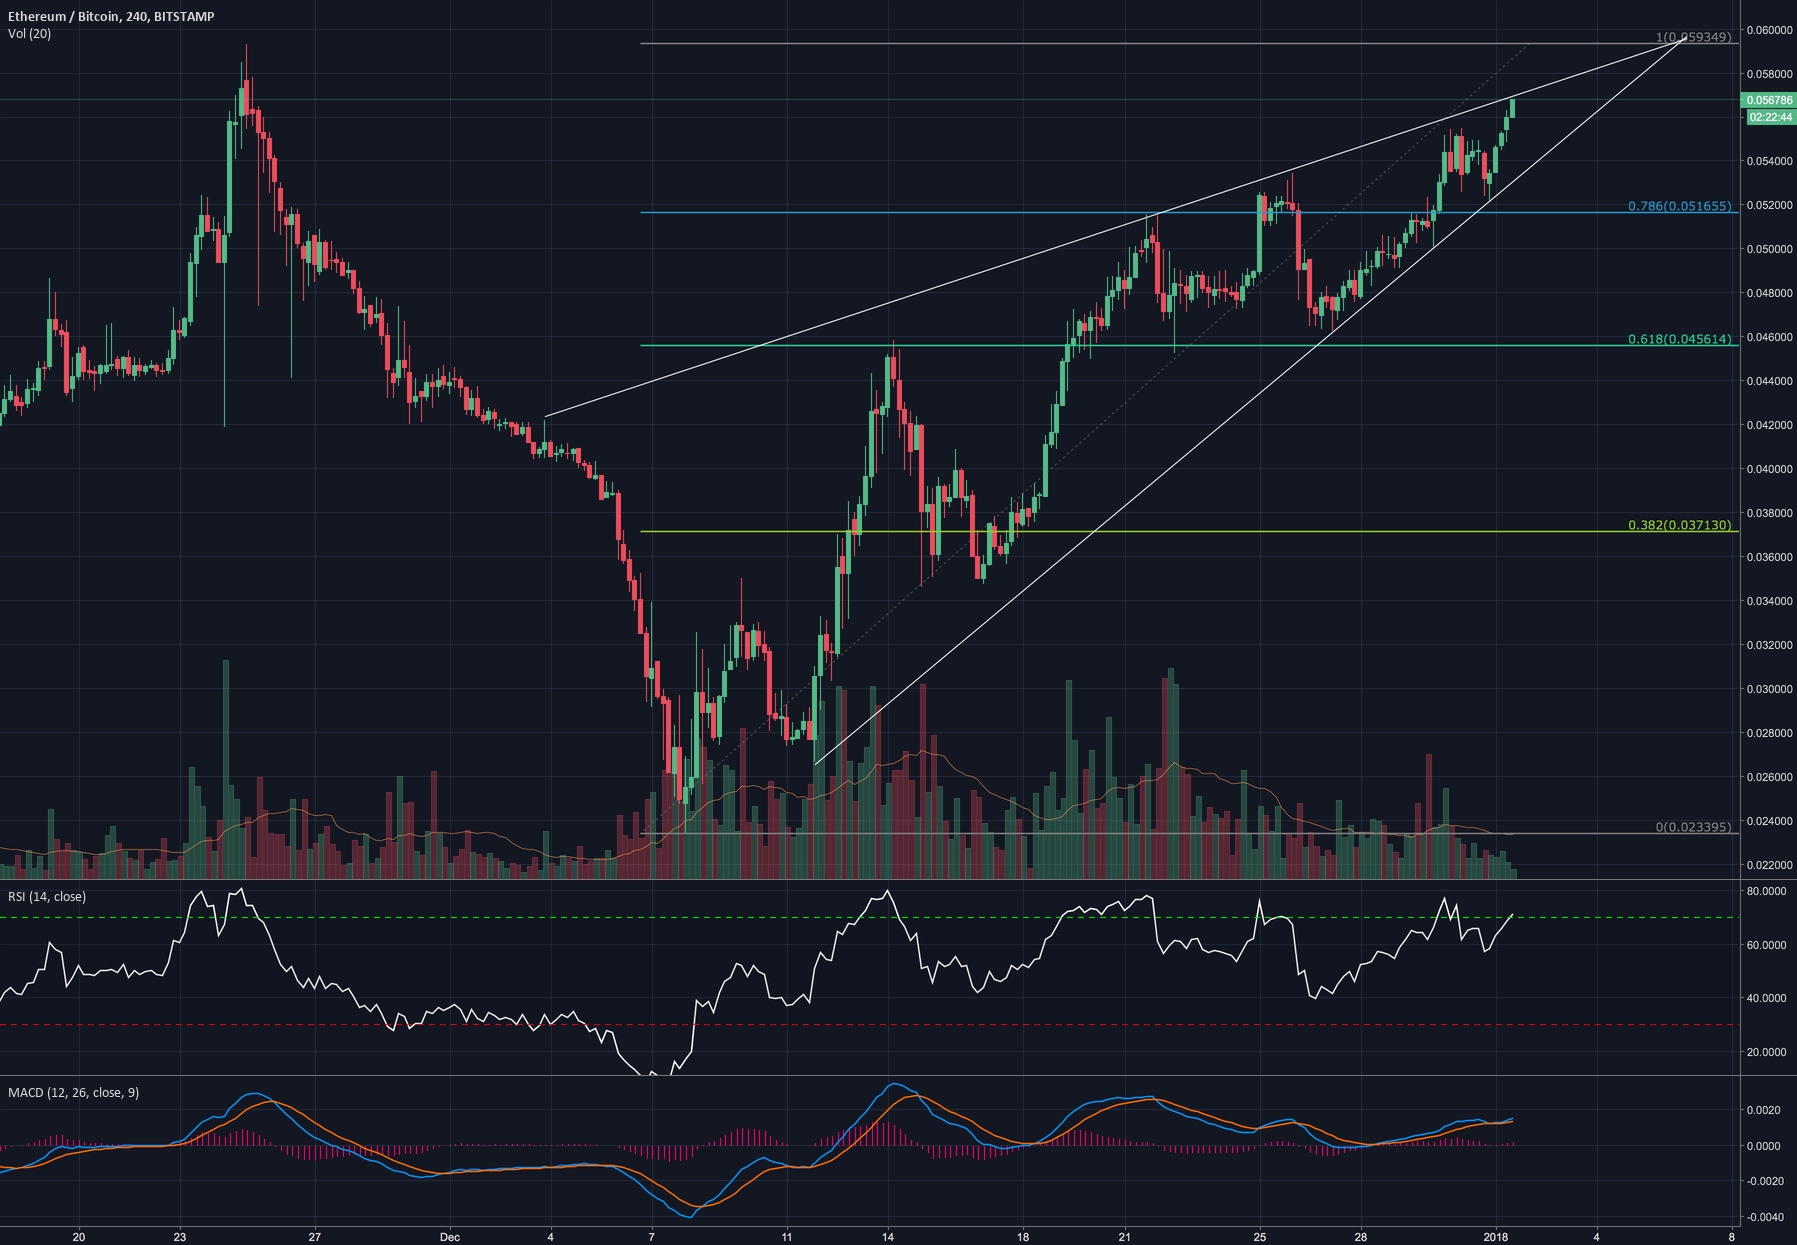 ETH/BTC built a rising Wedge, which actually is a bearish signal